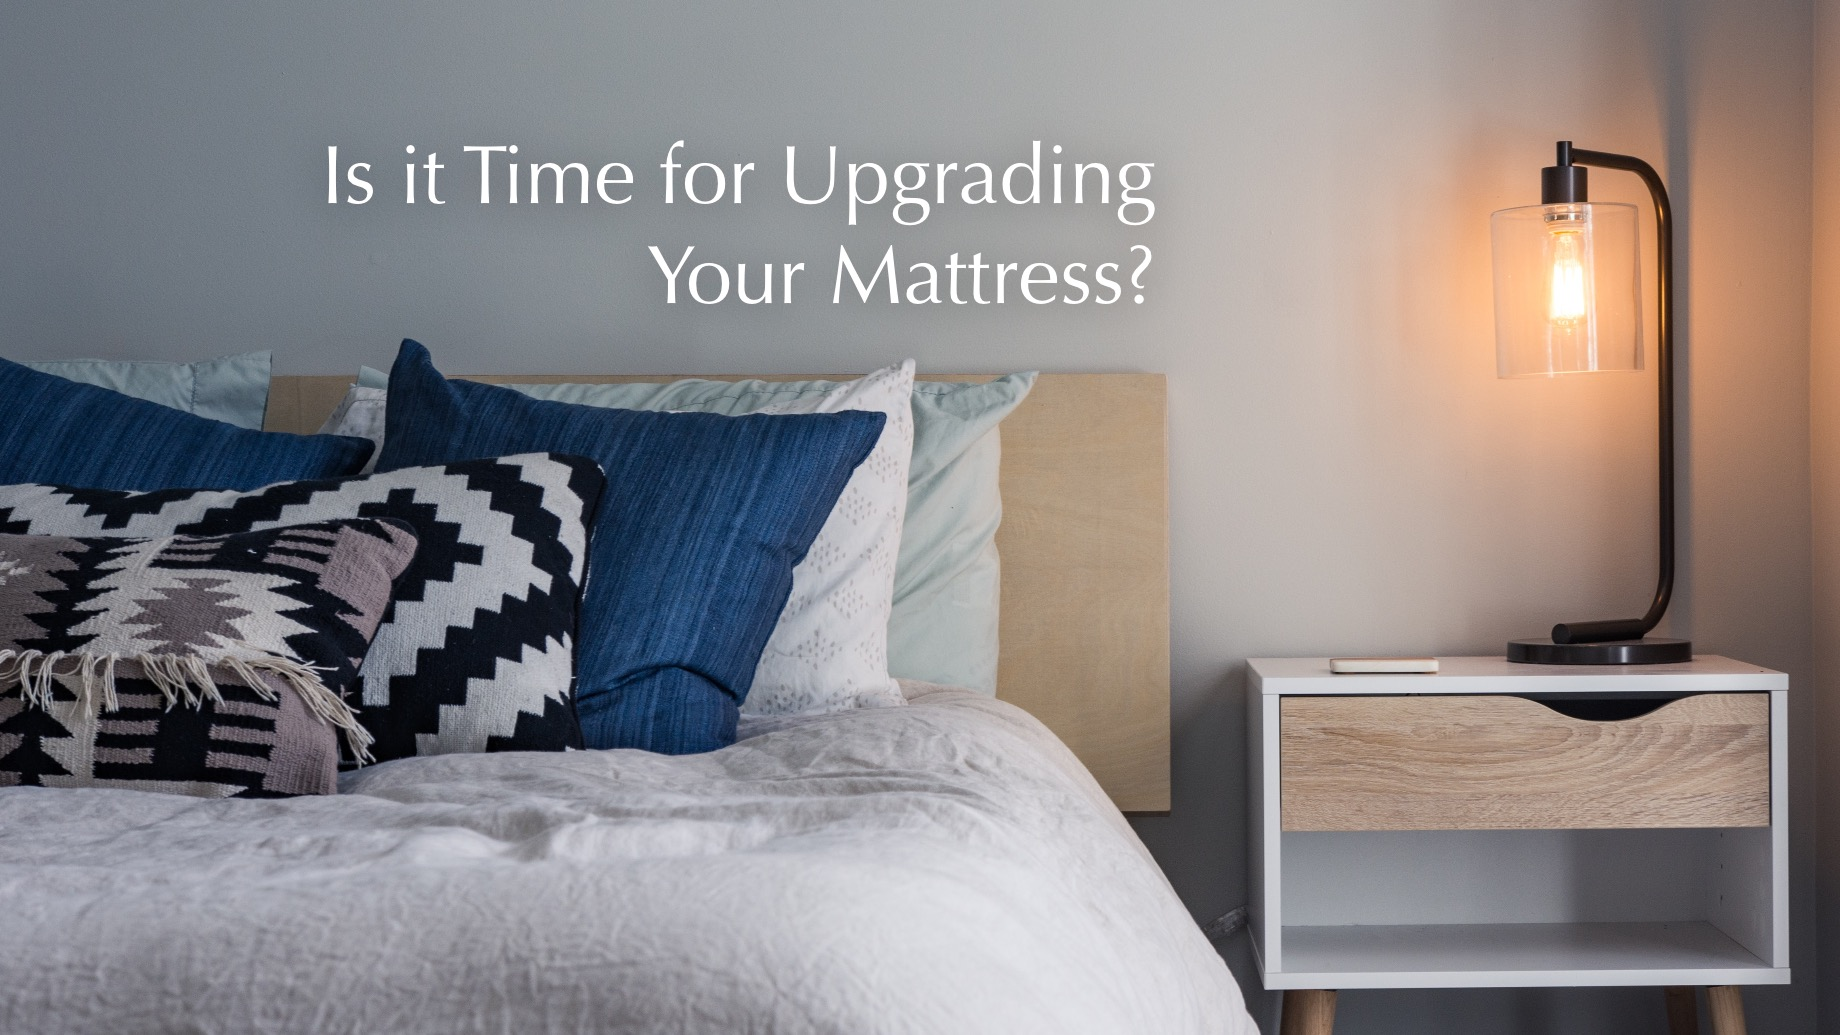 Is it Time for Upgrading Your Mattress?